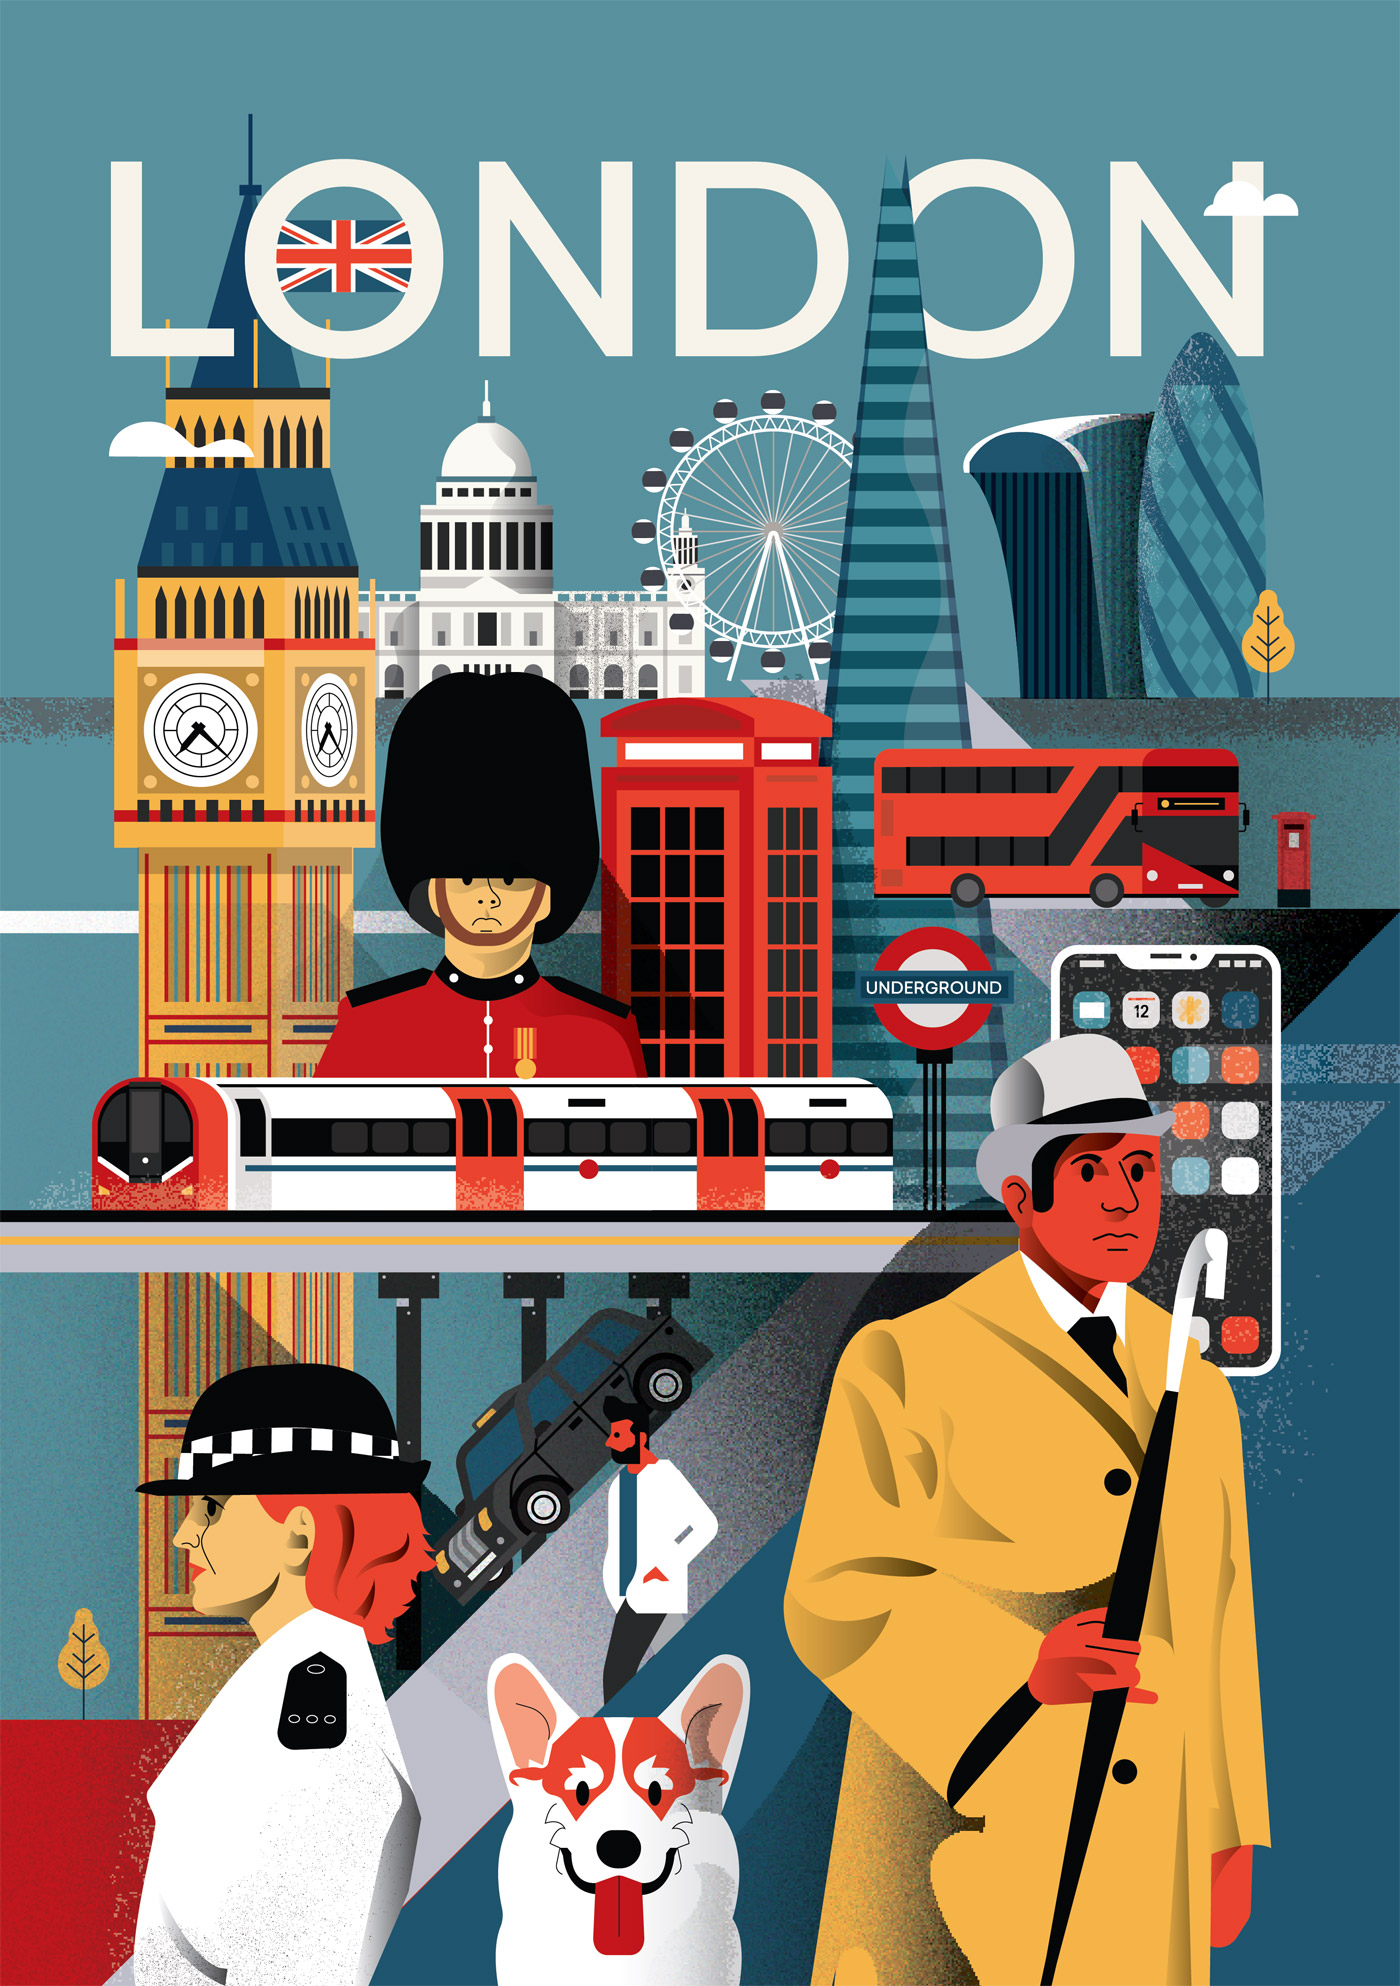 London city poster by Arunas Kacinskas.